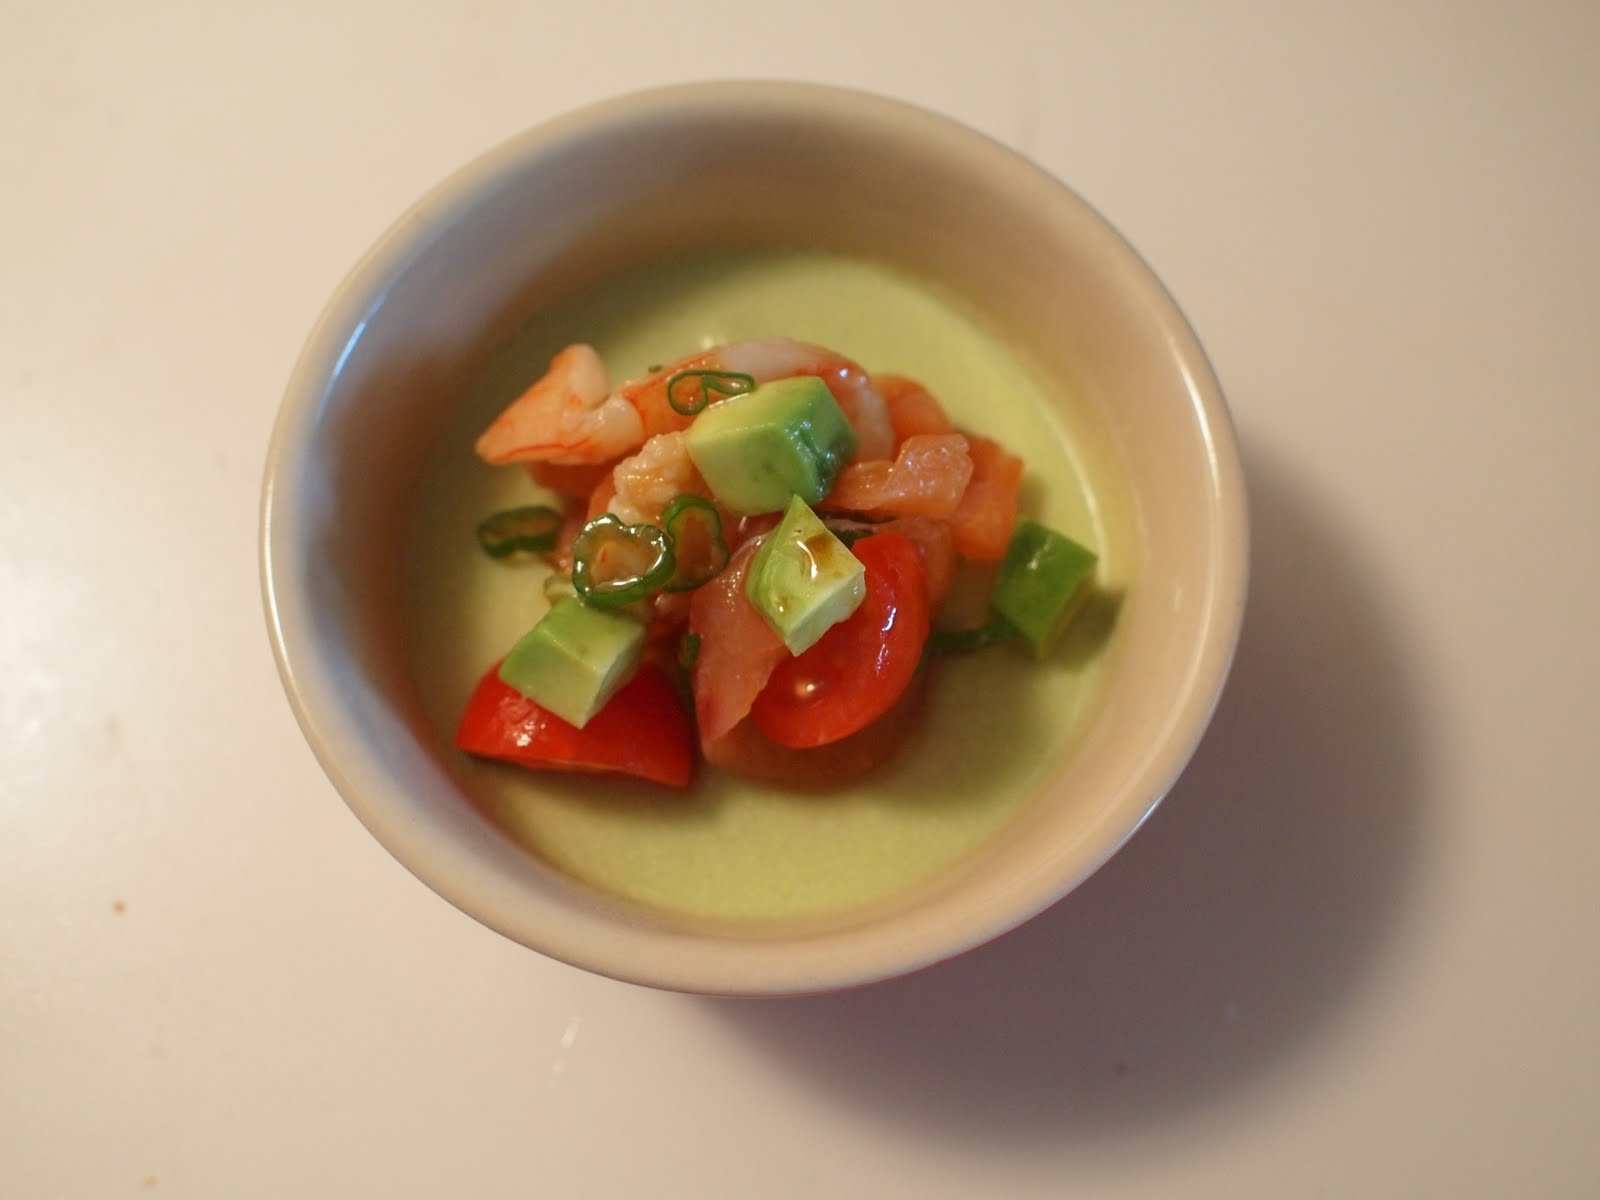 Foodie Love: Avocado Recipe Contest Series: Avocado Panna Cotta